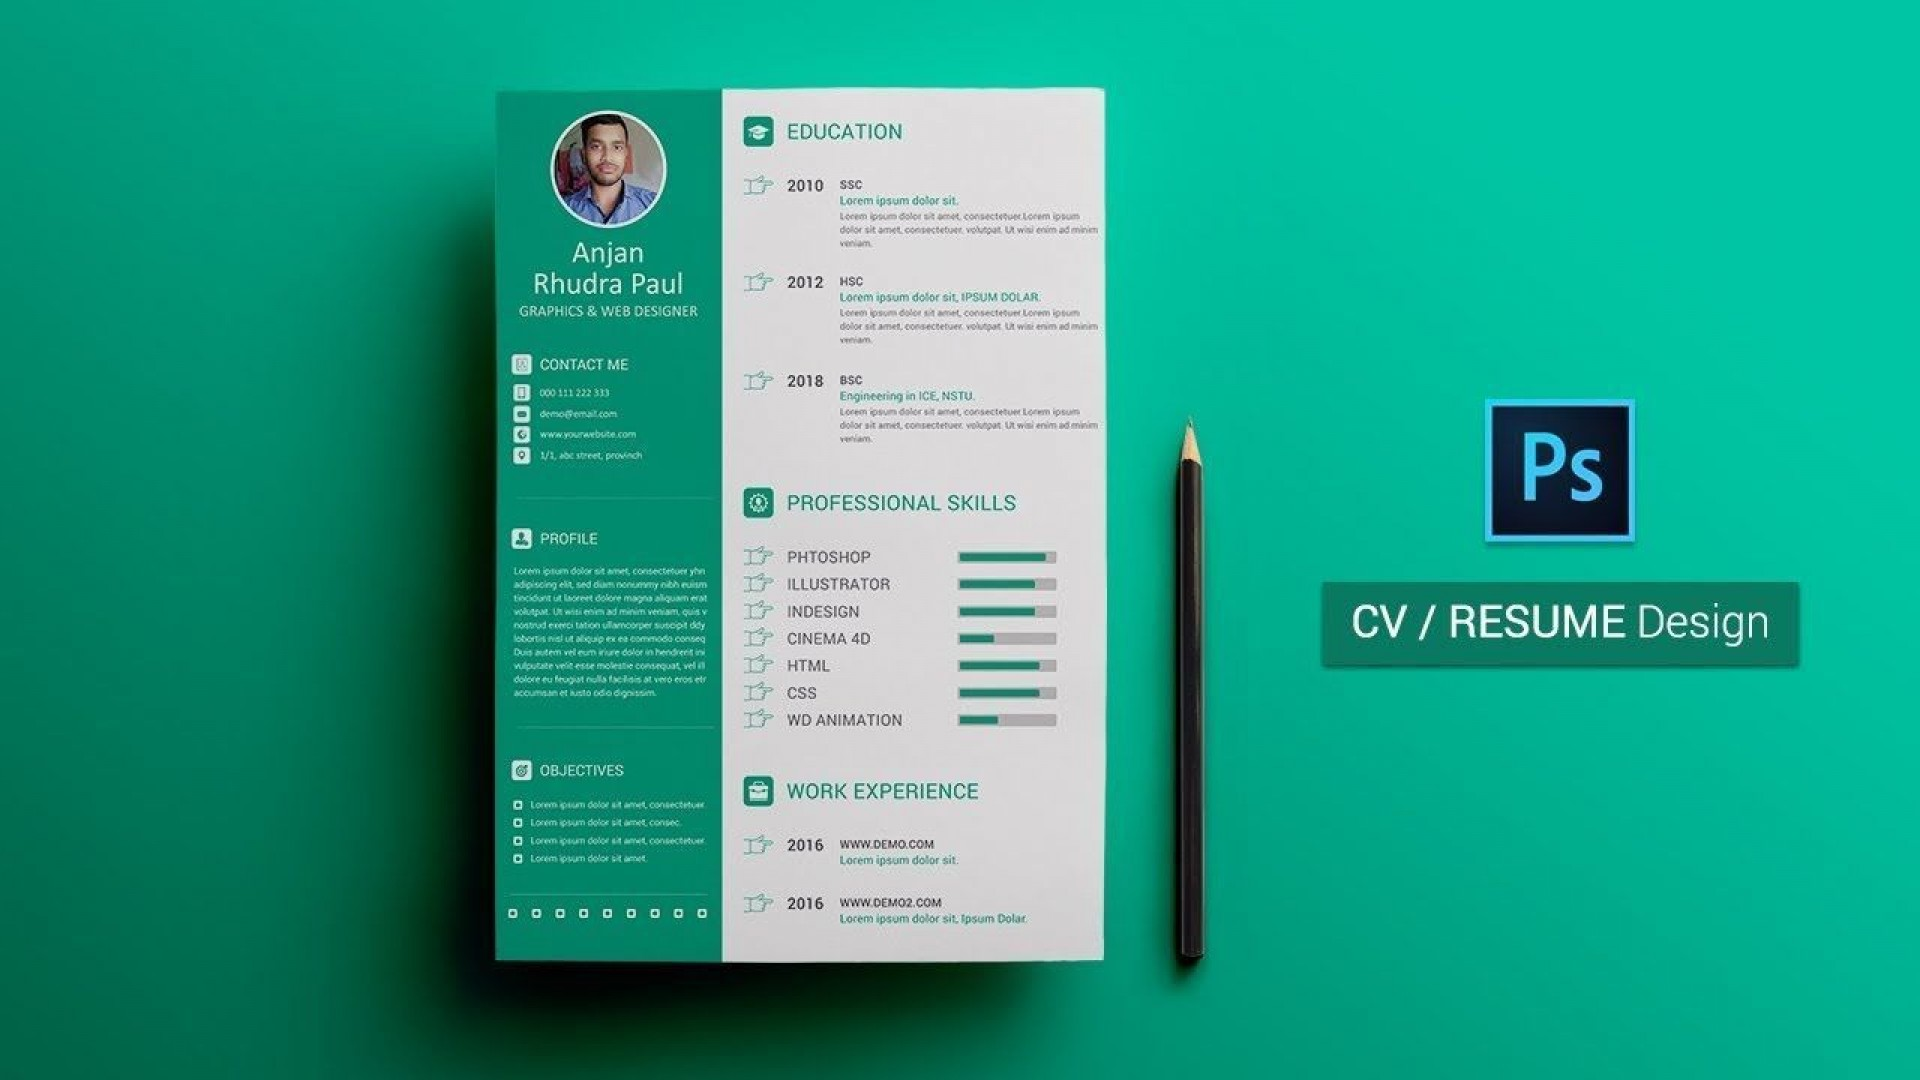 003 Wonderful How To Create A Resume Template In Photoshop Highest Quality 1920